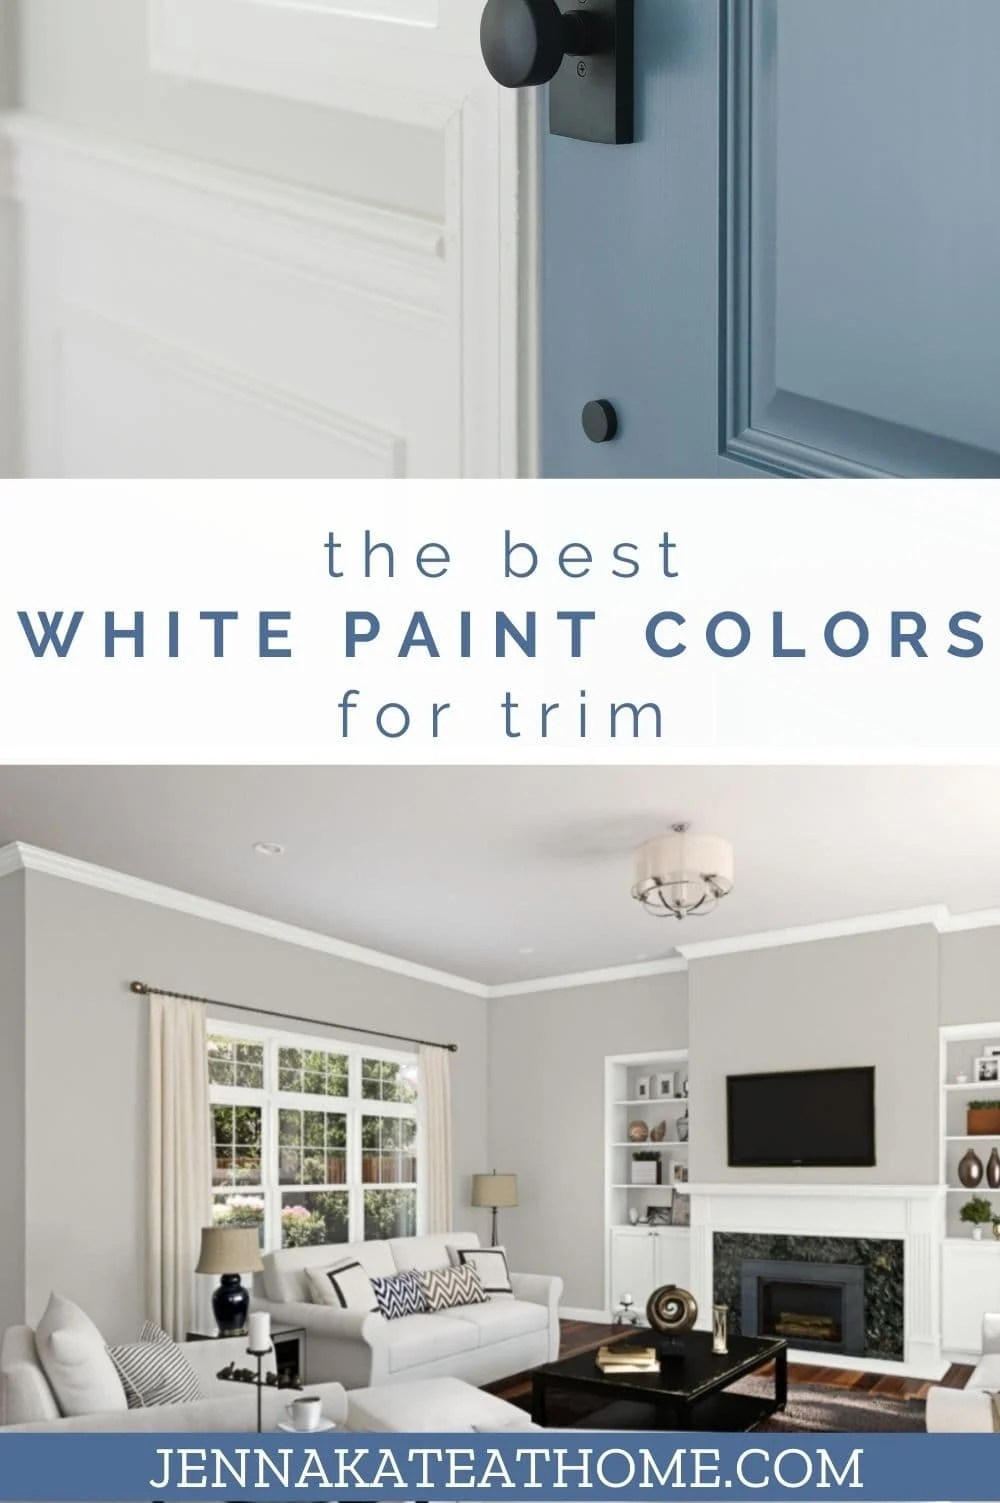 the best white paint colors for trim from benjamin moore and sherwin williams